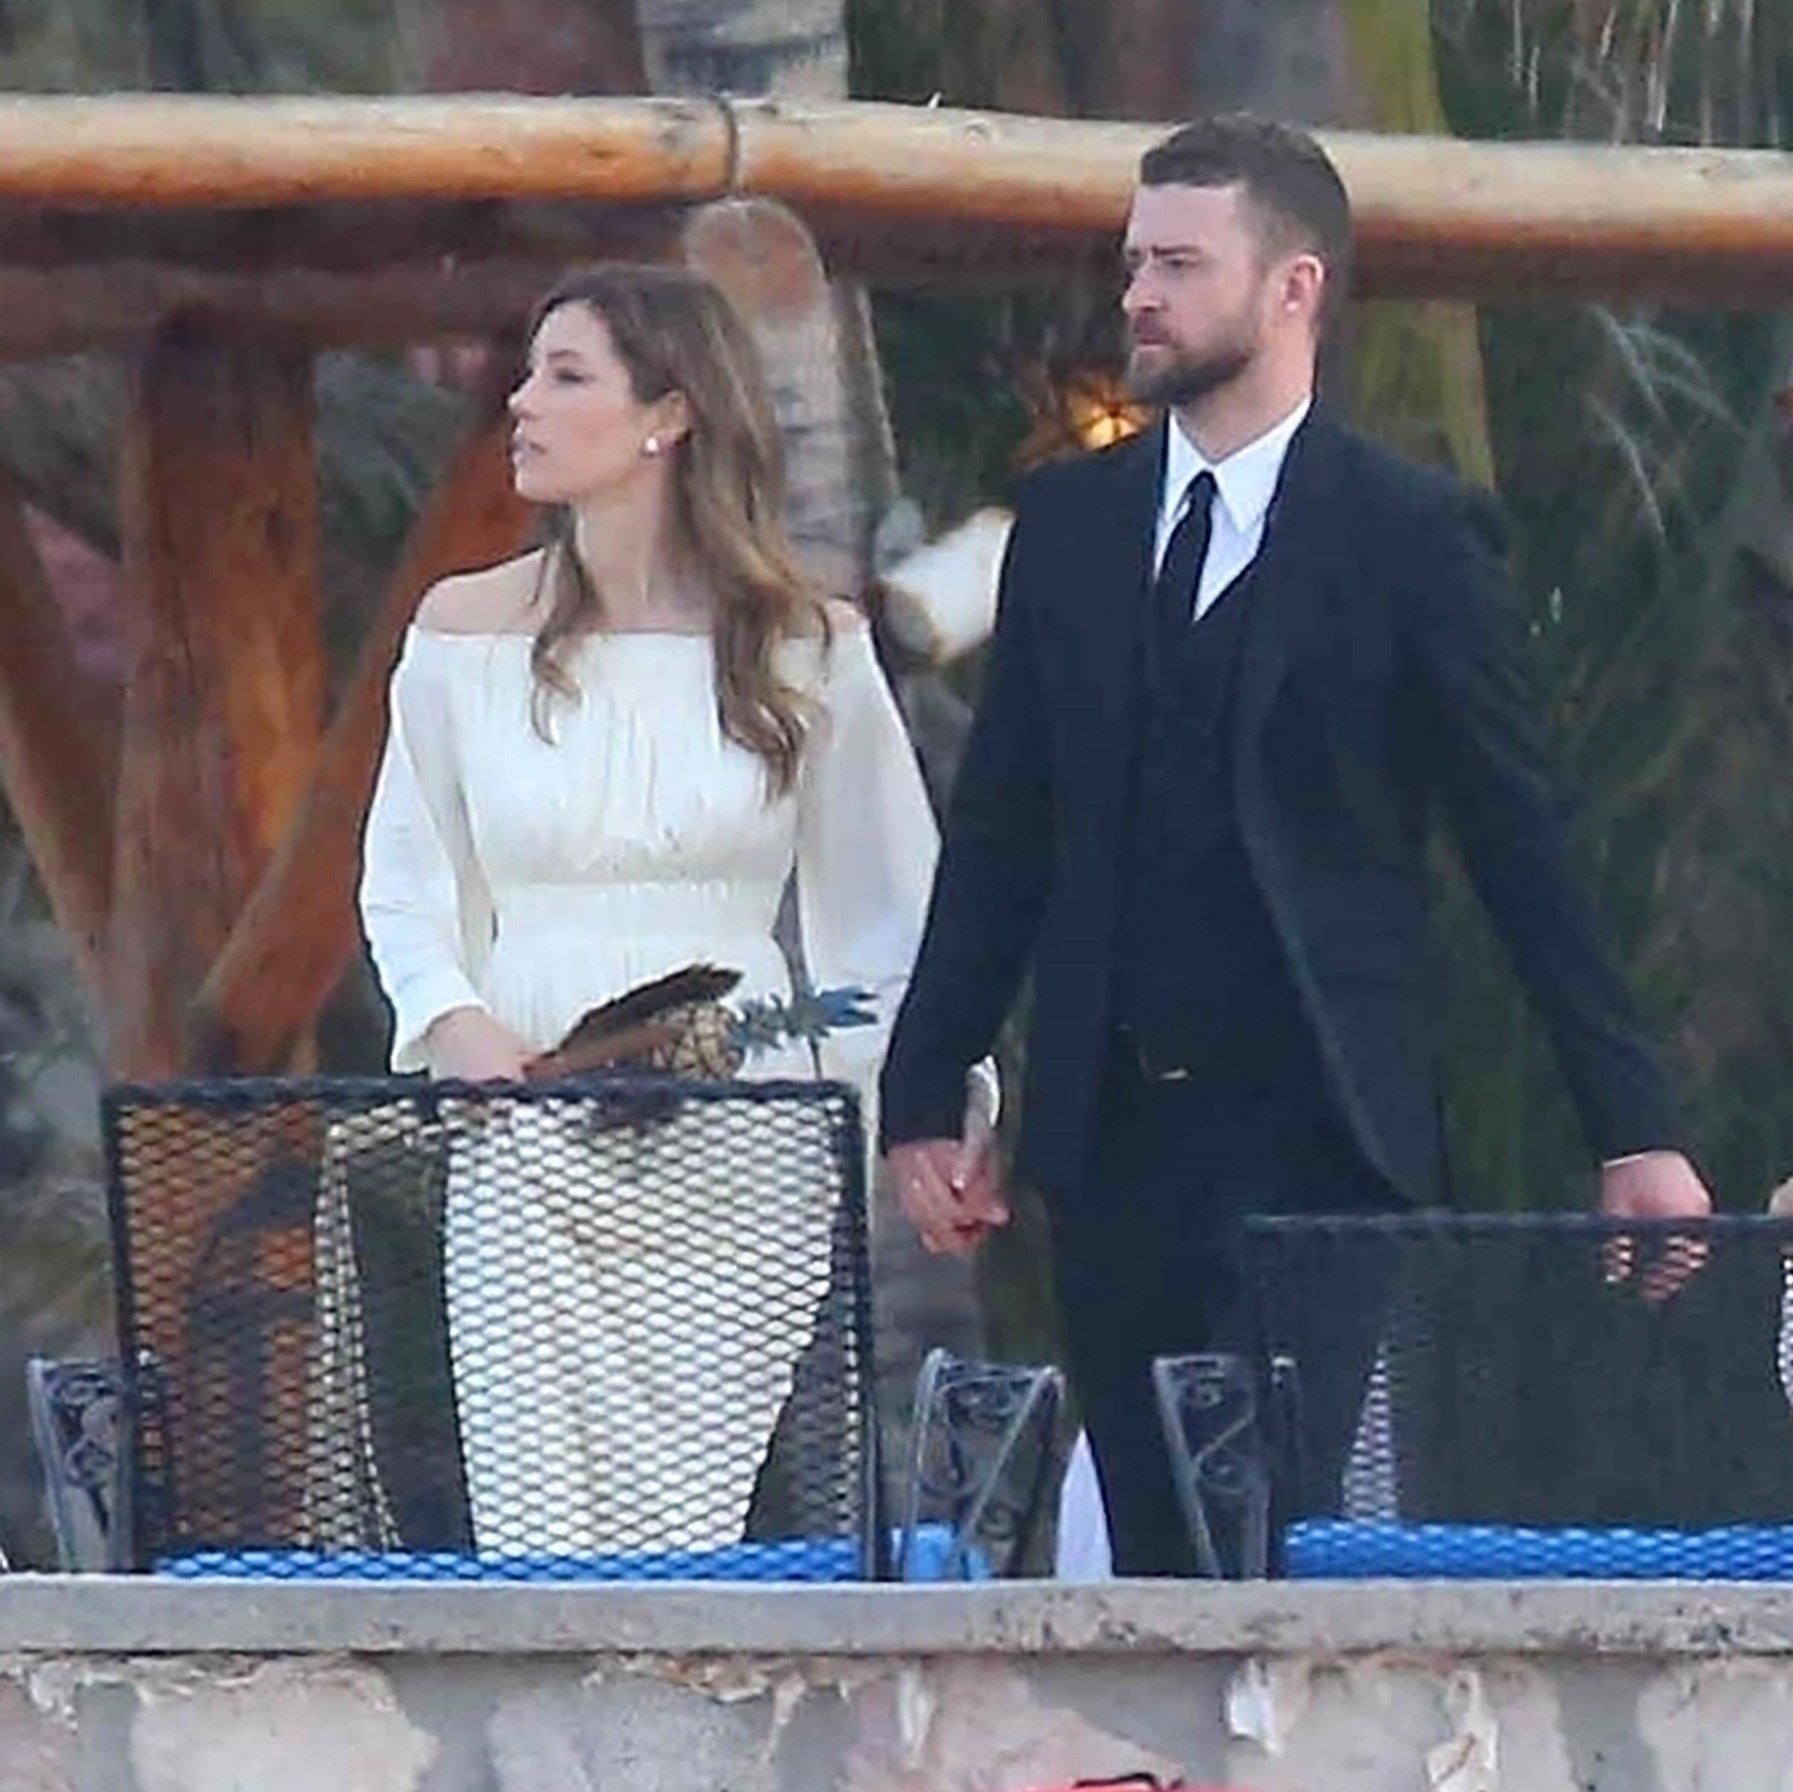 Justin Timberlake, Jessica Biel, Brother, Wedding, Cabo San Lucas, Mexico